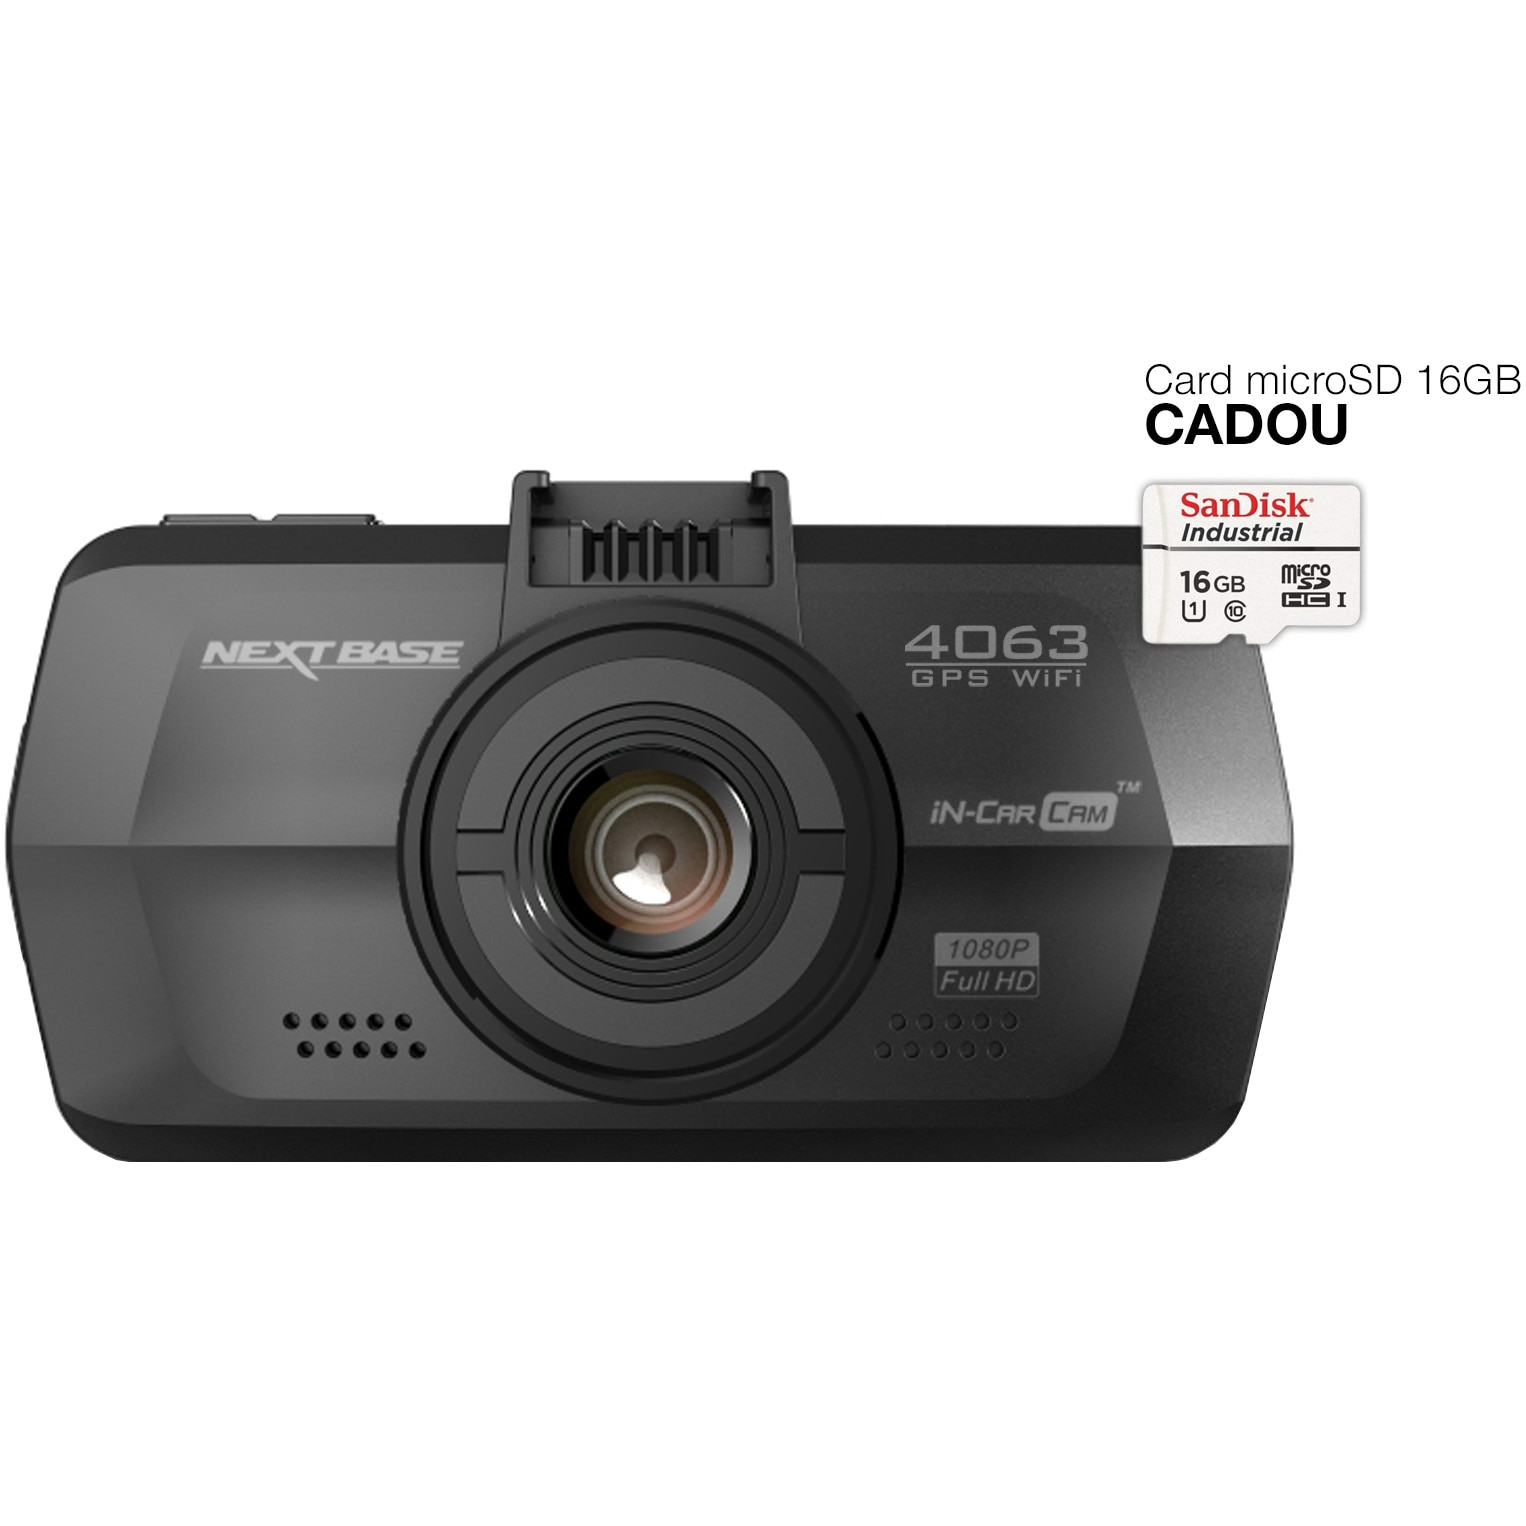 "Fotografie Camera auto DVR Next Base 4063, 2.7"", Full HD"